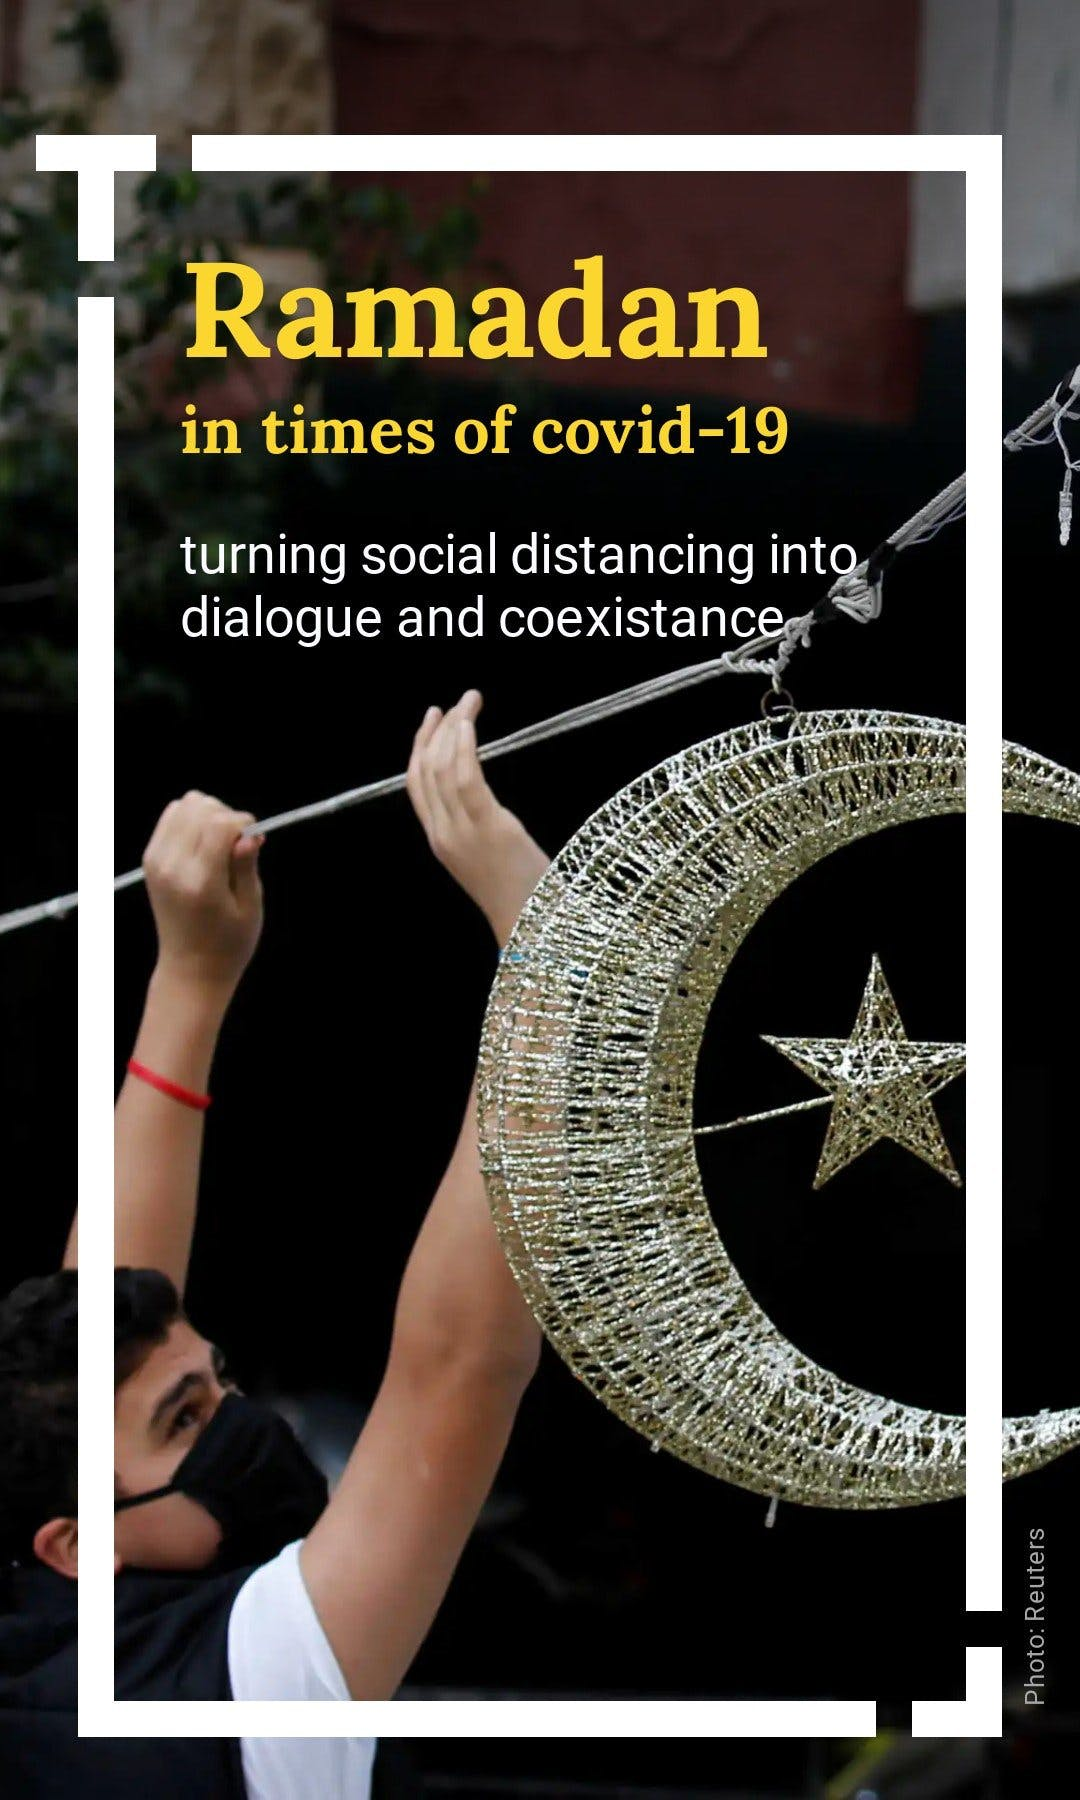 Cover image of a Tappable web story explaining how Covid-19 has impacted the Ramadan